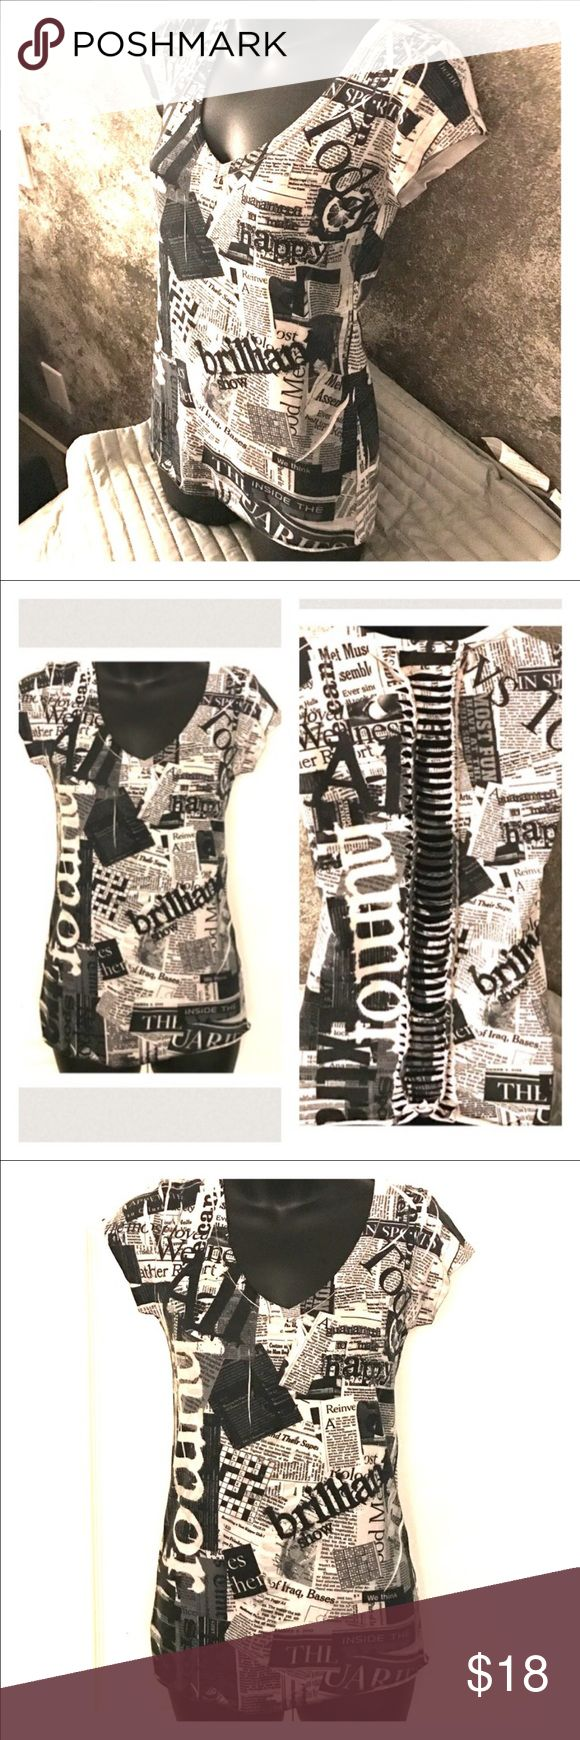 """Juniors M v-neck graphic newspaper cutout back Cool newspaper article v-neck juniors top. Has the cut out back as shown in the first photo. Unique and rare top. Size M . GUC. Measures approximately 15"""" without stretching in width in front and approximately in 23.5"""" length. Brand is Eastway. Bundle with my other items to receive even more discounts. Five star seller. Buy with confidence. Reasonable offers accepted. Special bundles made for buyers on request. Items from my personal closet…"""